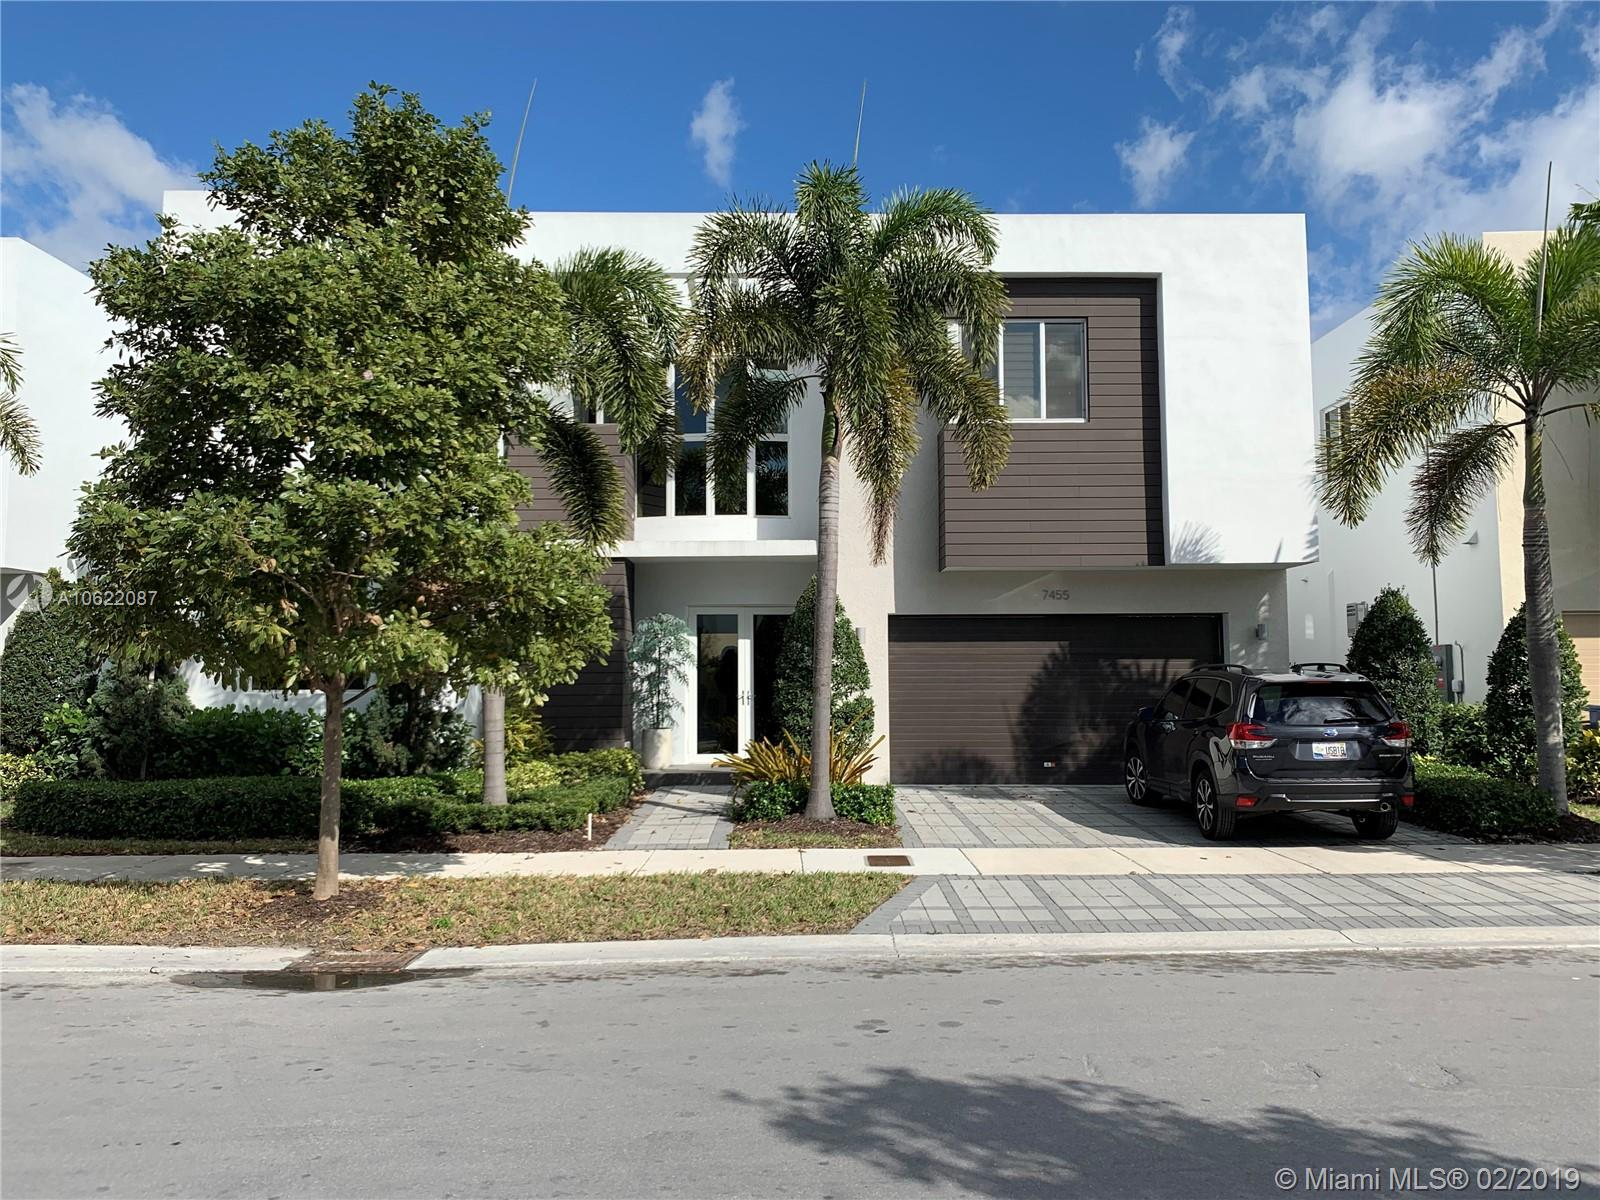 7455 NW 99th Ave, Doral, FL 33178